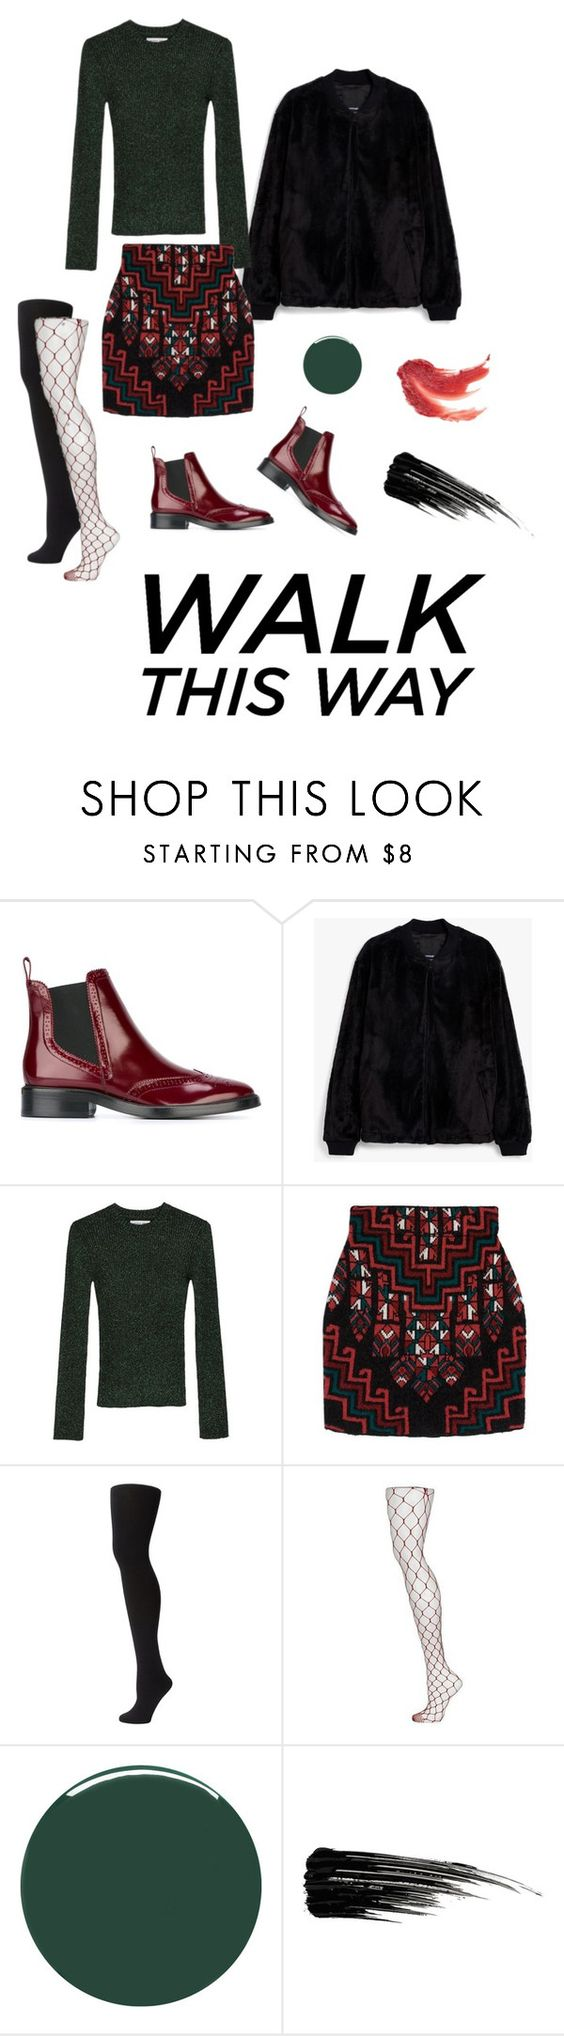 """""""Chelsea Boots"""" by thisiswhyri ❤ liked on Polyvore featuring Burberry, Apiece Apart, MARA, Plush, Topshop, Smith & Cult and Urban Decay"""